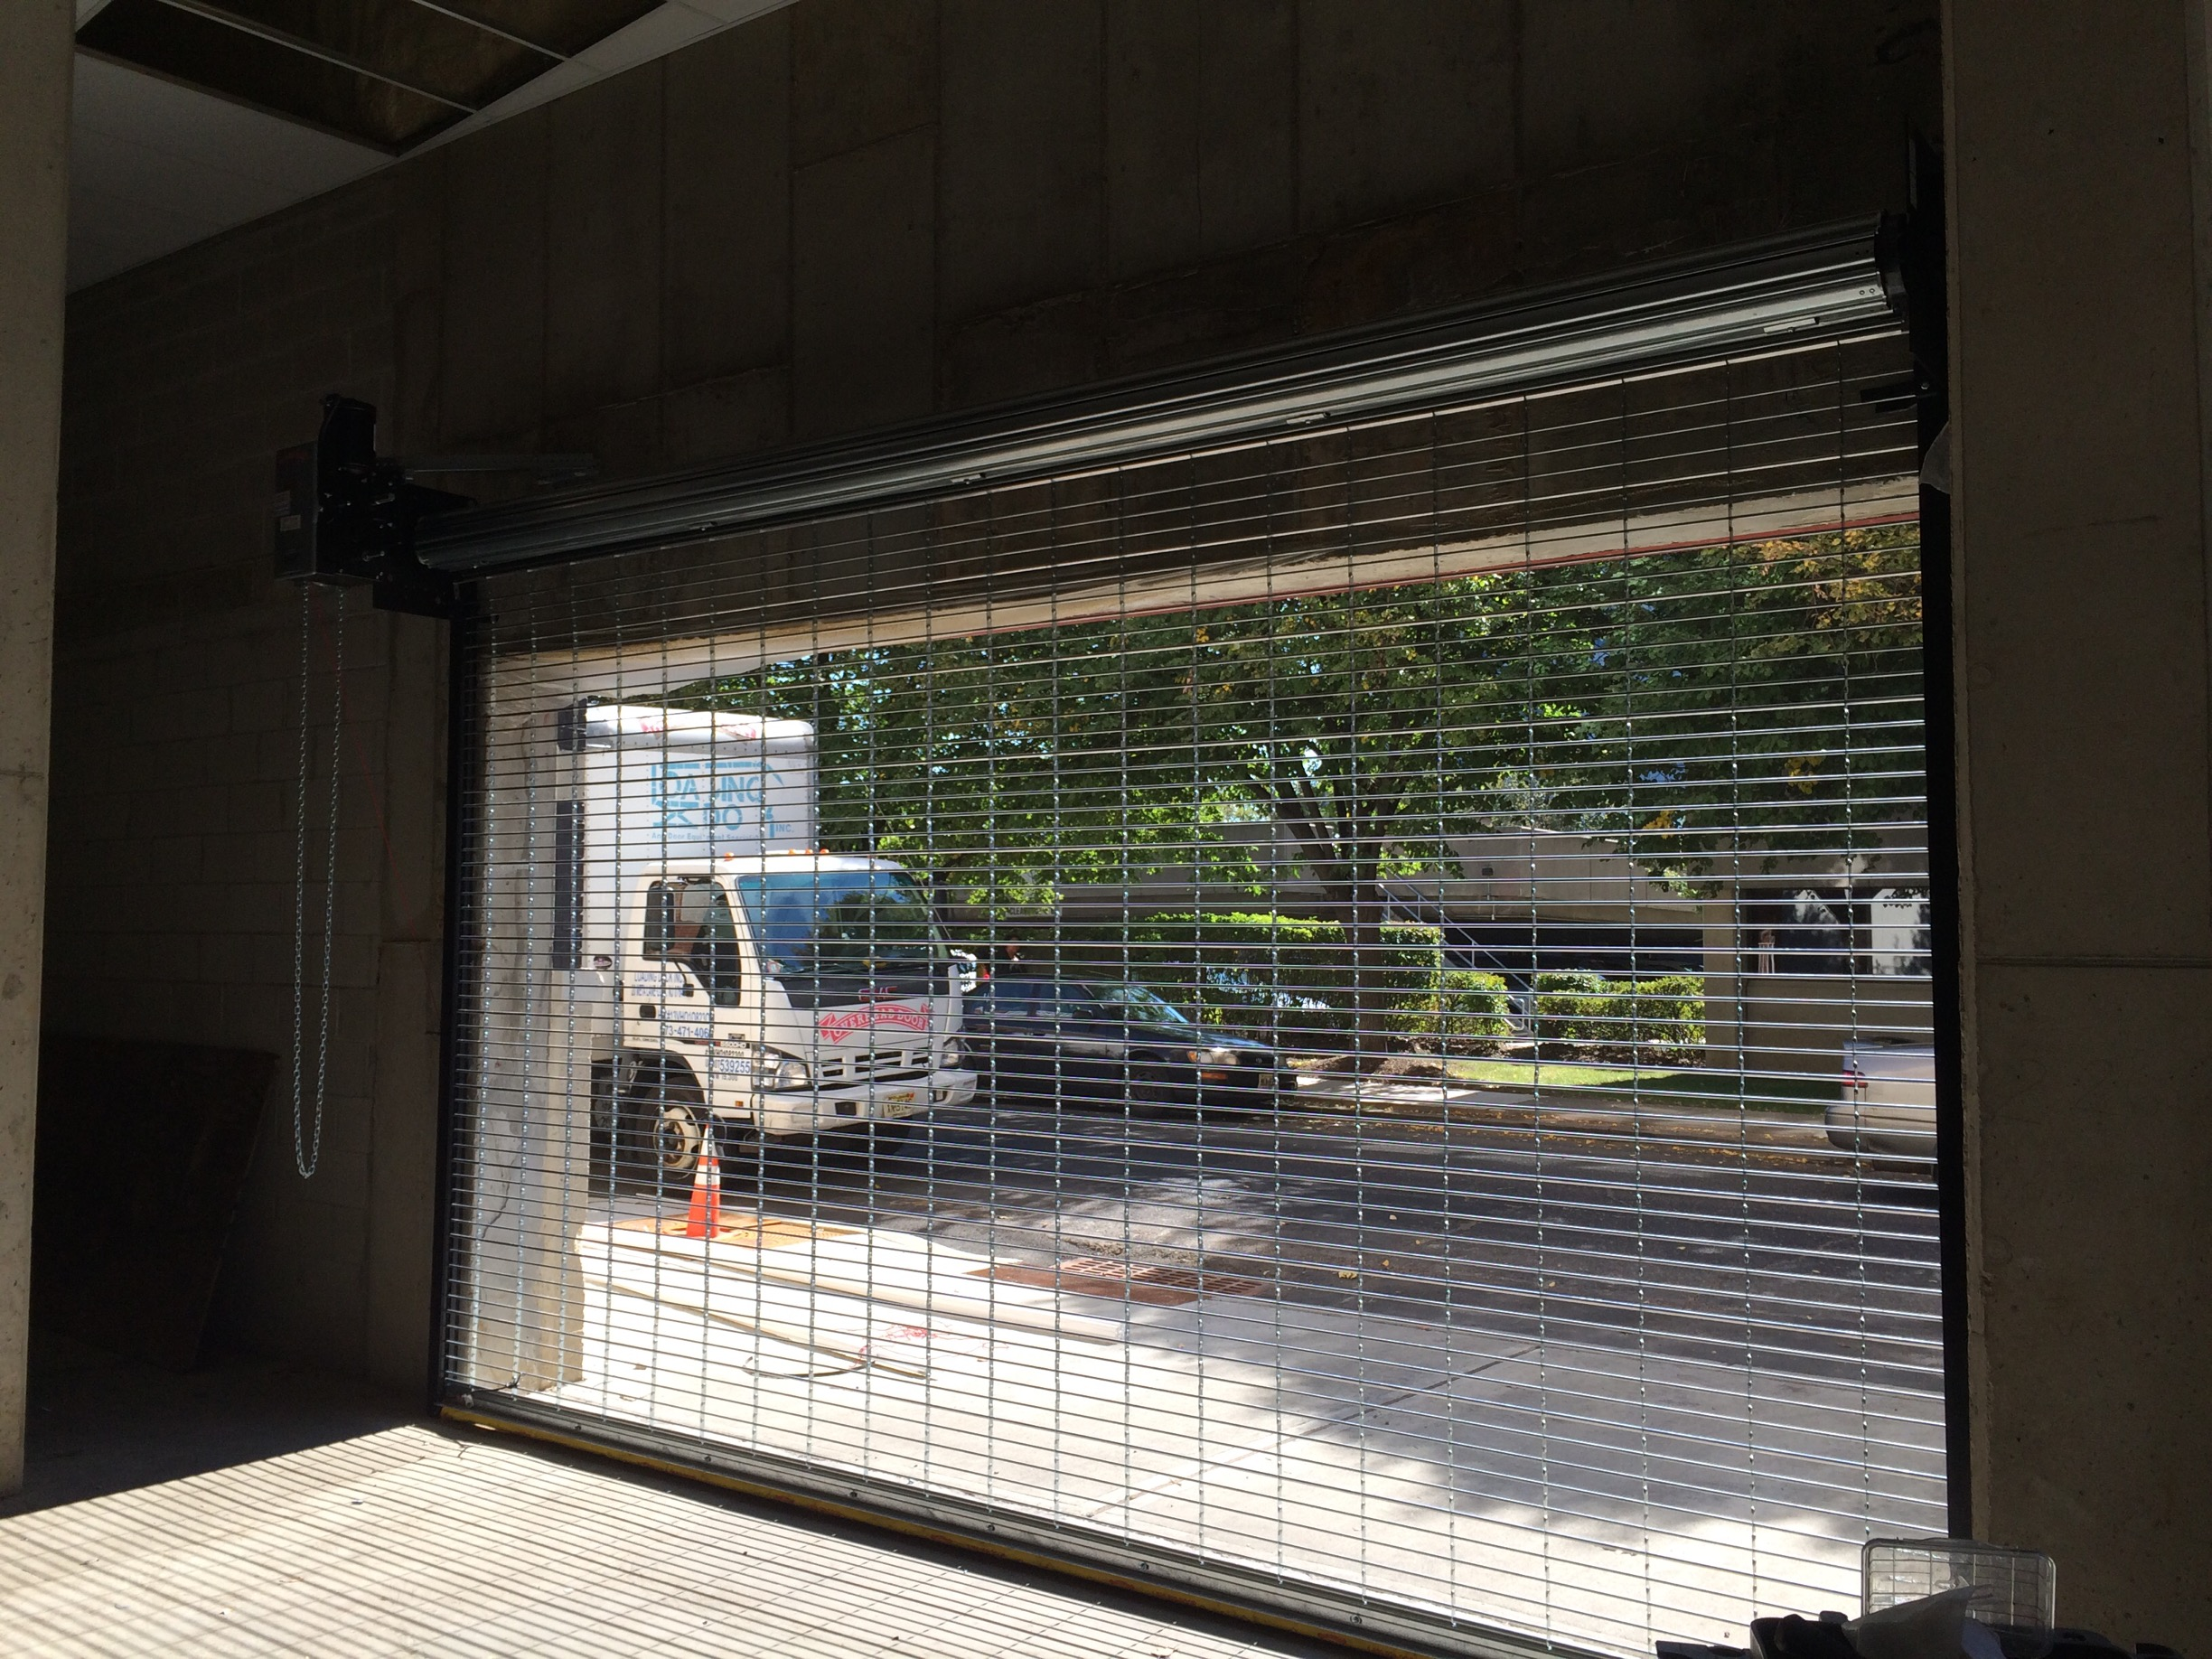 mesh curtain grille overhead rollup doors parking garage nj ny repair service replace & Finest Doorman Blog | Loading Dock New Jersey - New York | automatic ...